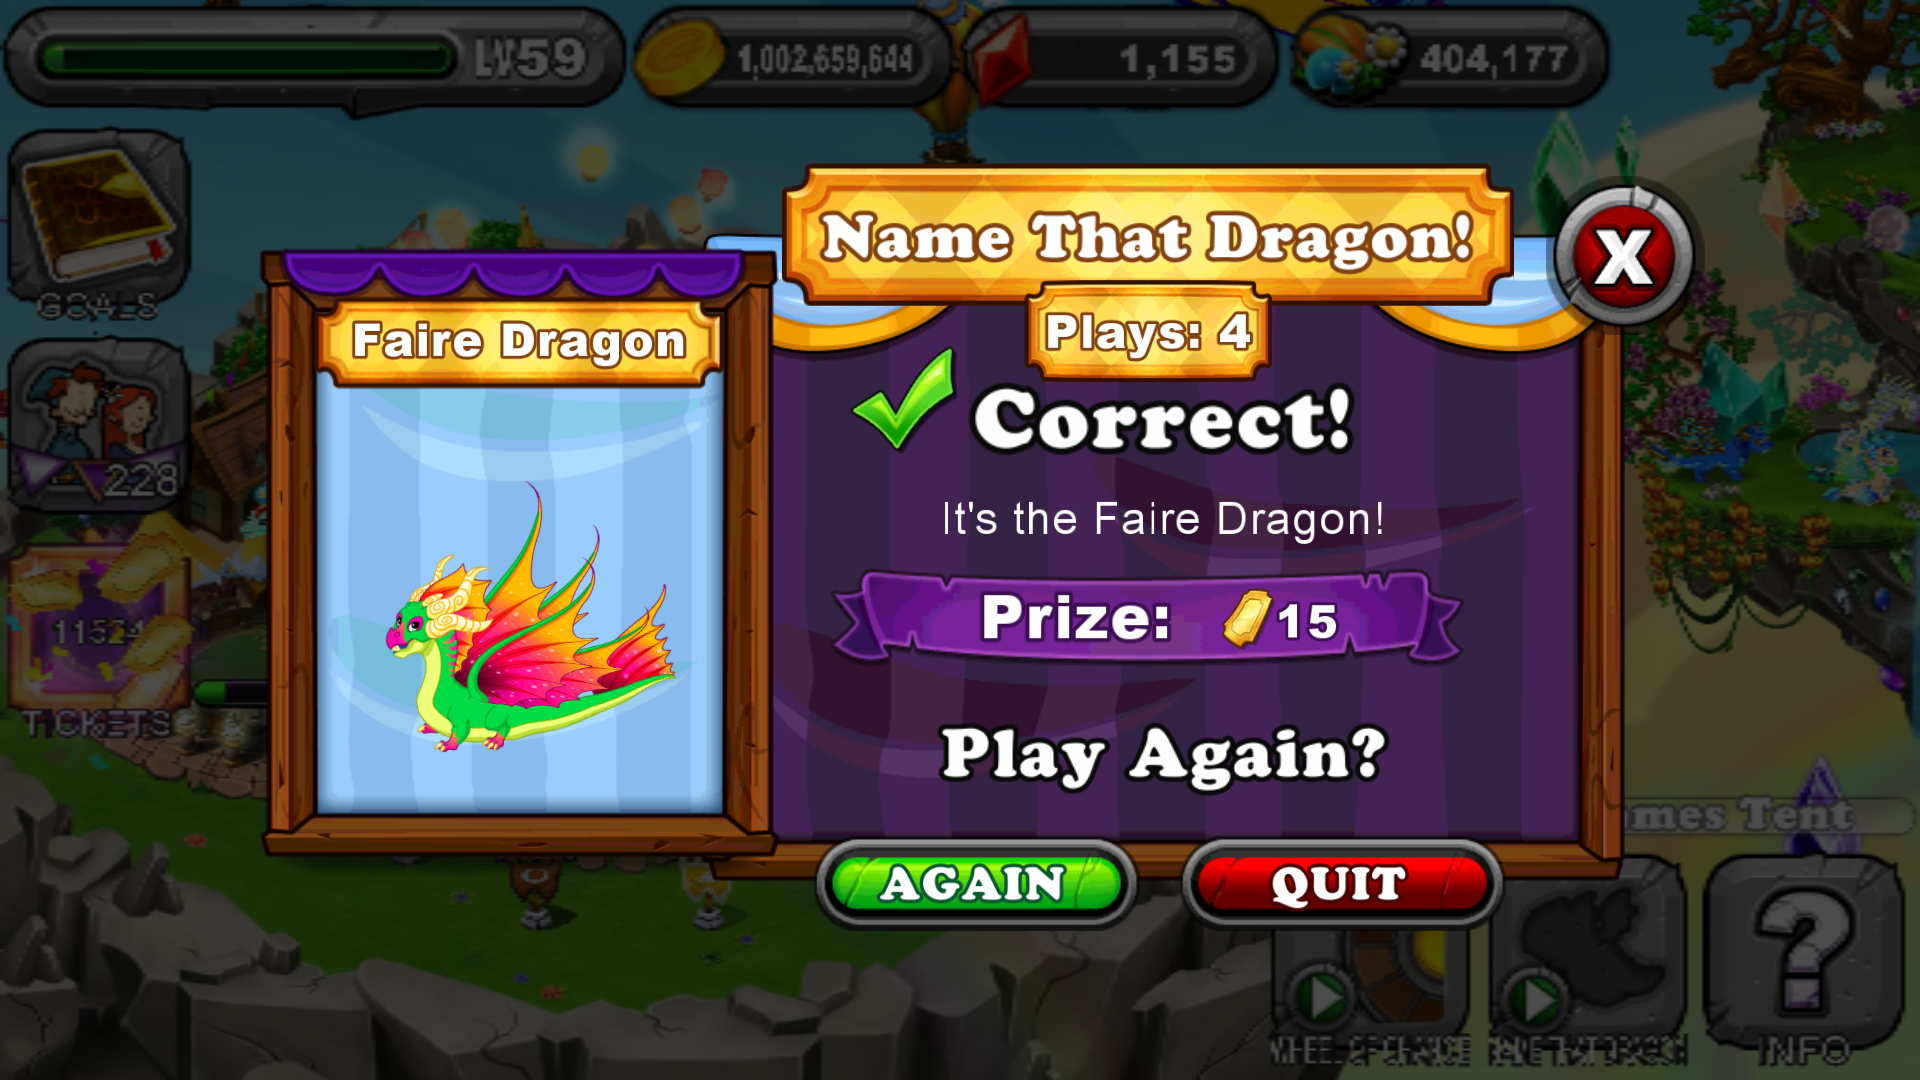 image - adult faire dragon preview | dragonvale wiki | fandom